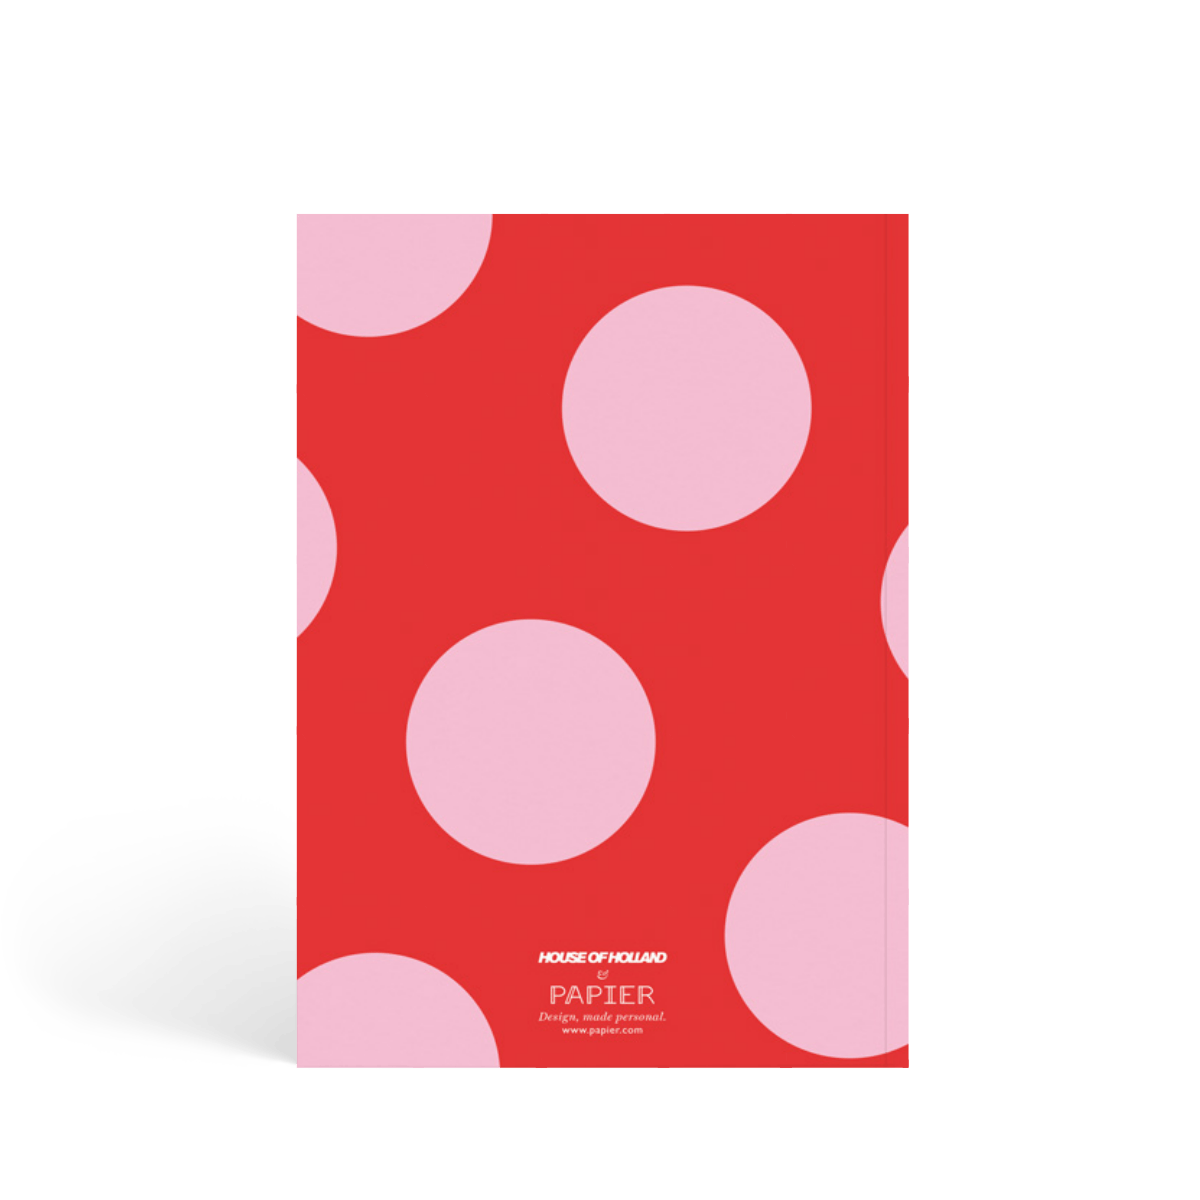 Https%3a%2f%2fwww.papier.com%2fproduct image%2f61761%2f5%2ff king pink polka dots 10528 arriere 1547744871.png?ixlib=rb 1.1